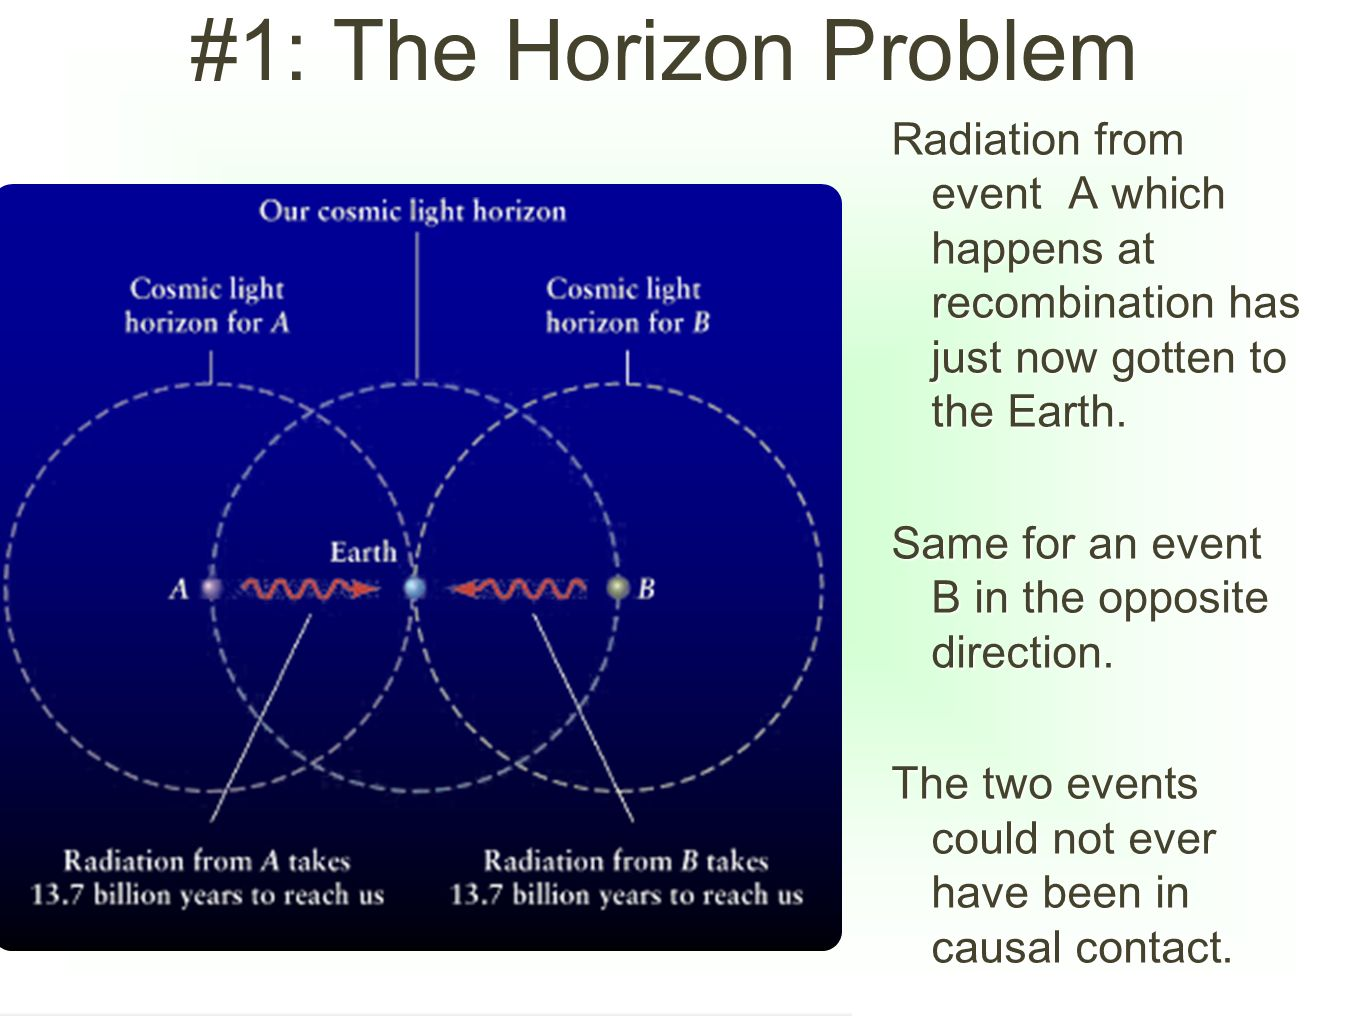 #1: The Horizon Problem Radiation from event A which happens at recombination has just now gotten to the Earth.